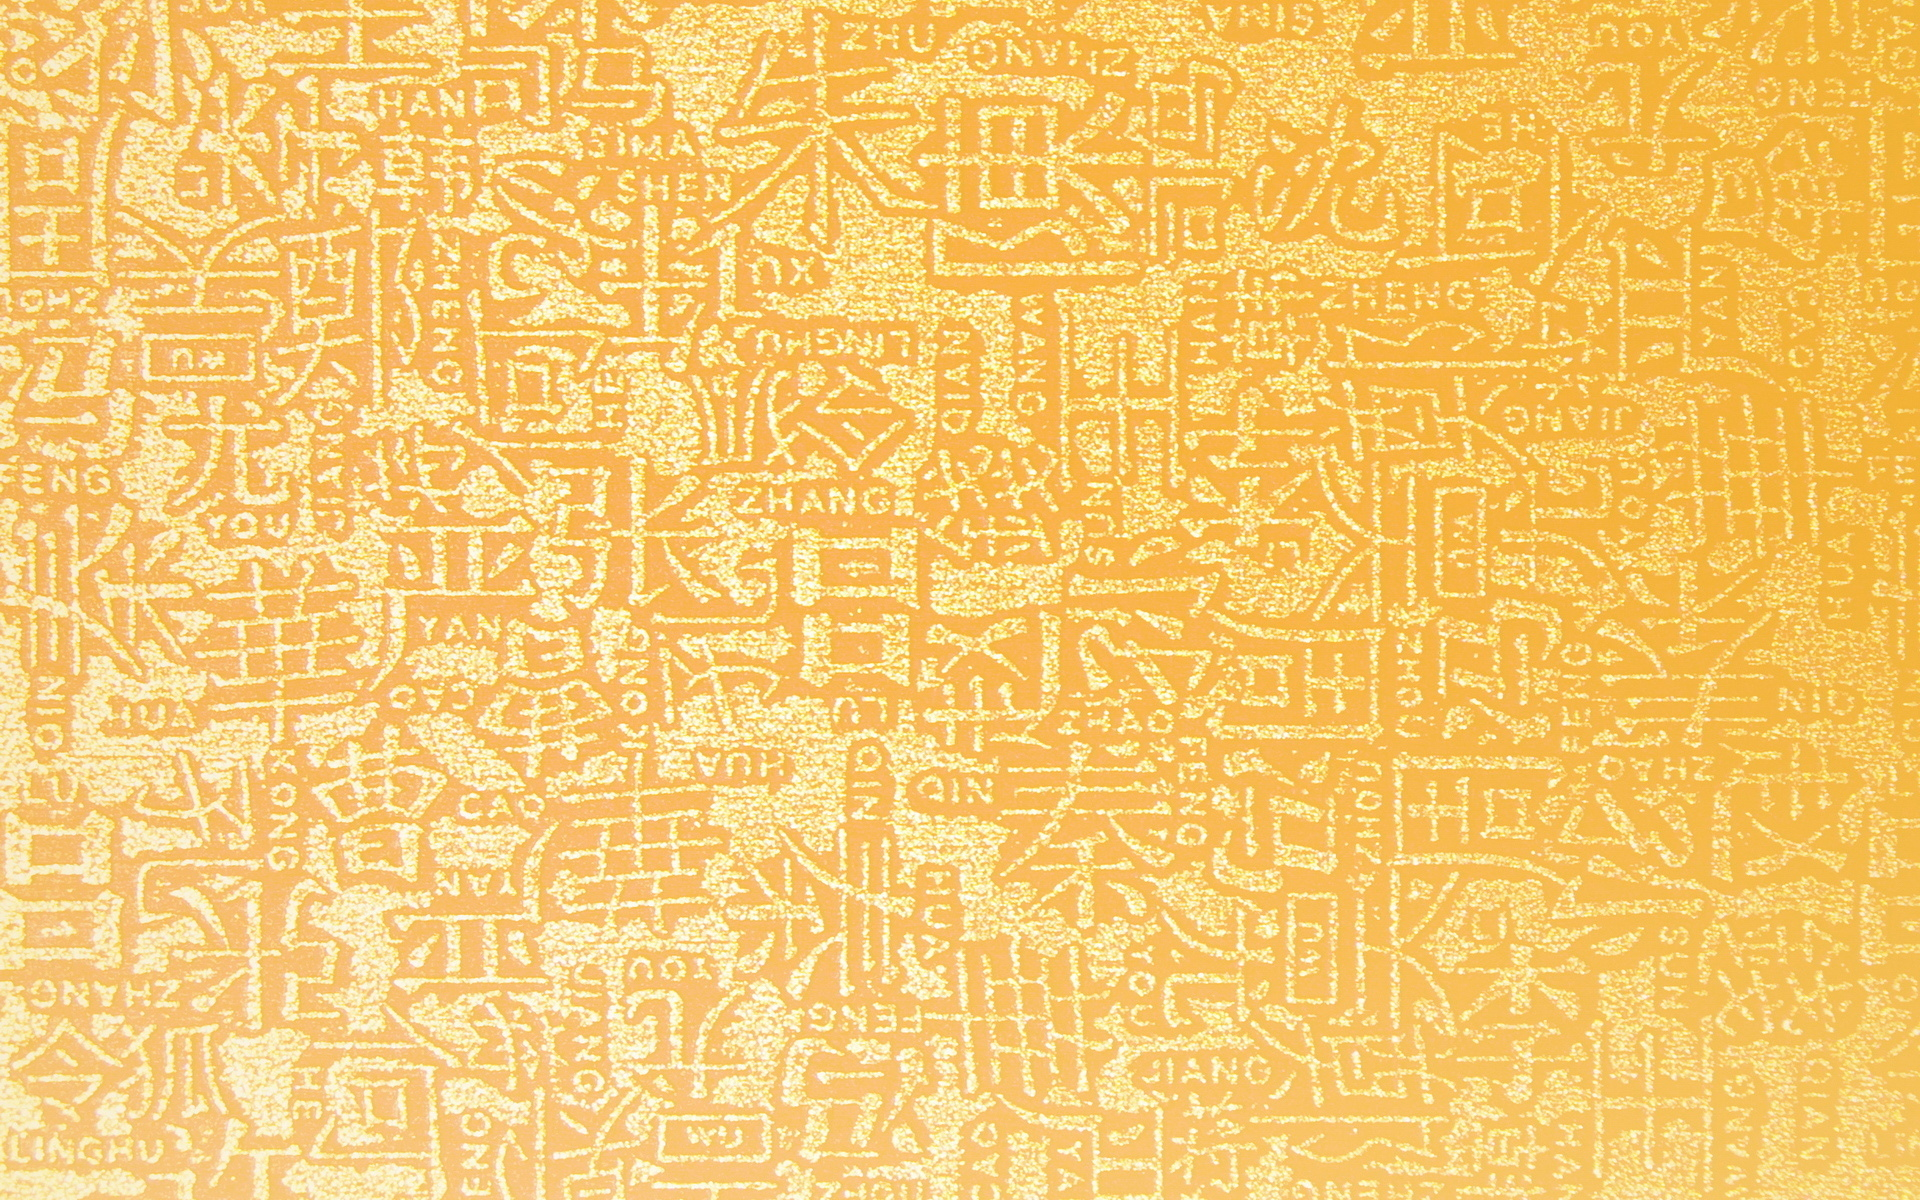 Chinese Calligraphy Wallpaper Hd Calligraphy Backgrounds Free Download Pixelstalk Net